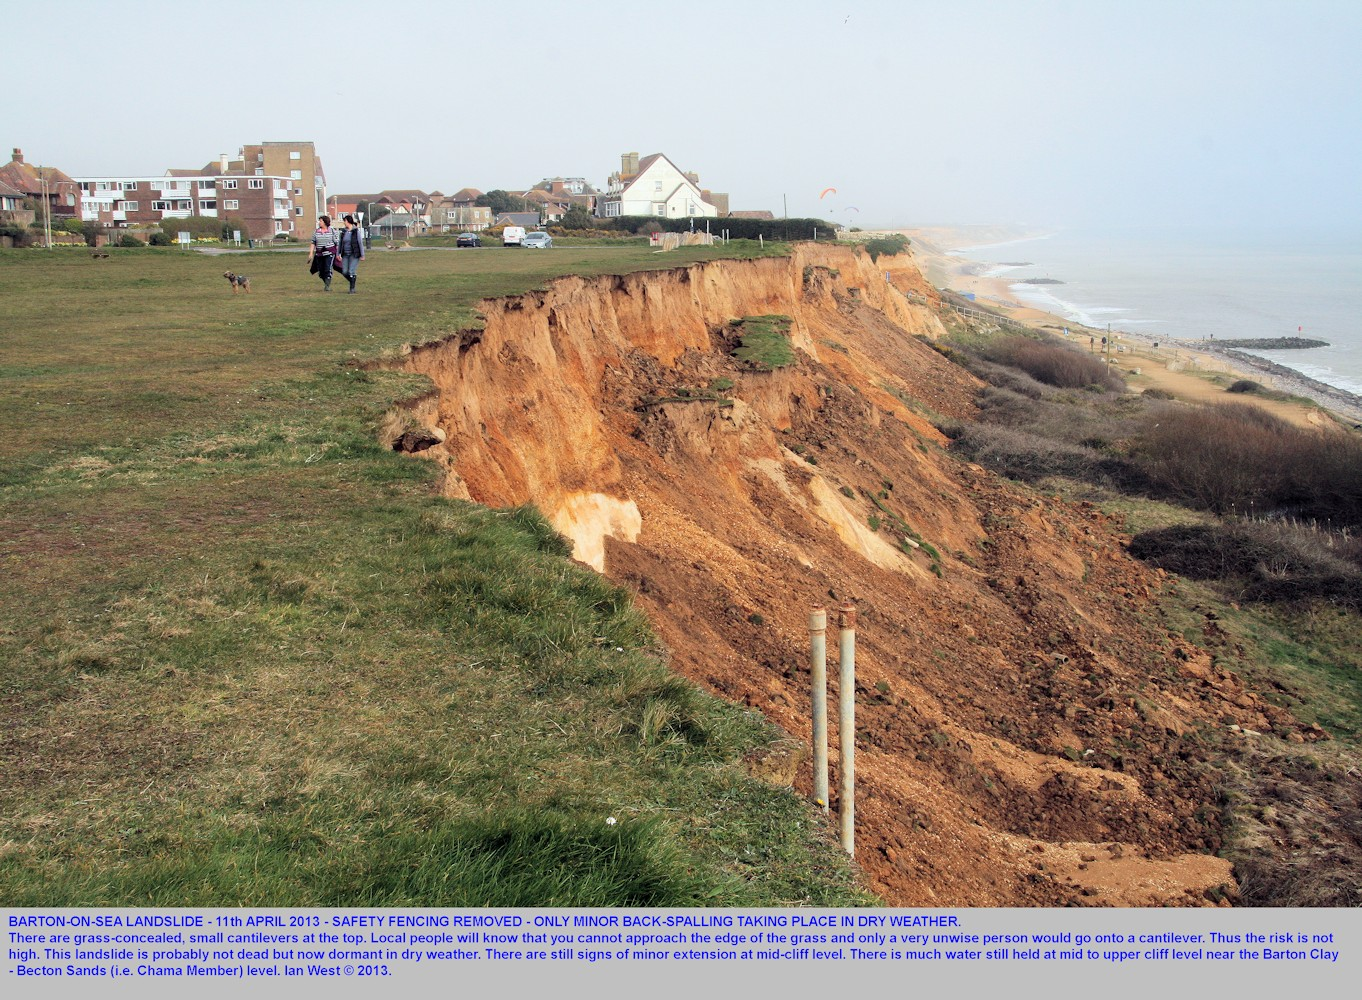 Back-spalling at the landslide near Hoskin's Gap,Barton-on-Sea, Hampshire, on the 11th April 2013